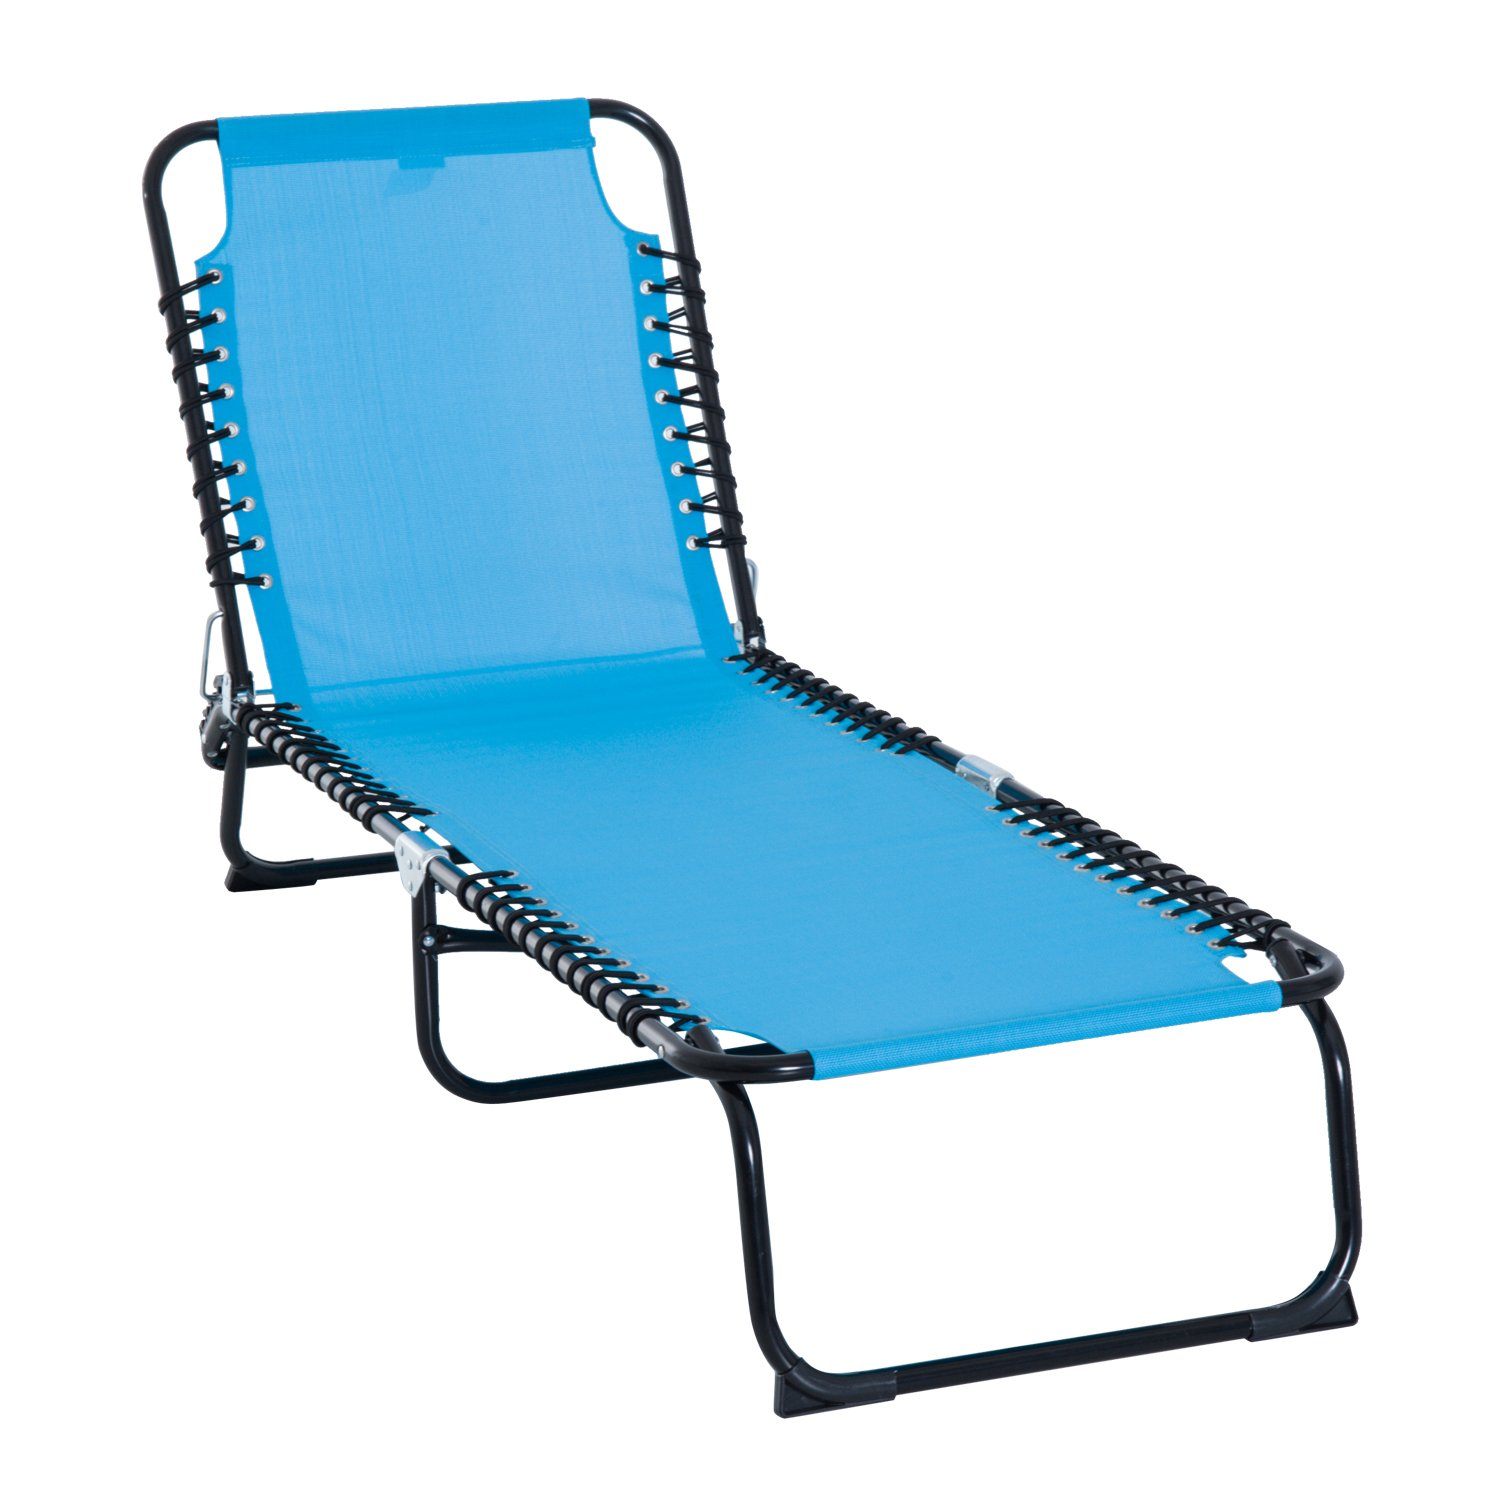 Outsunny 3-Position Reclining Beach Chair Chaise Lounge Folding Chair - Light Blue by Outsunny